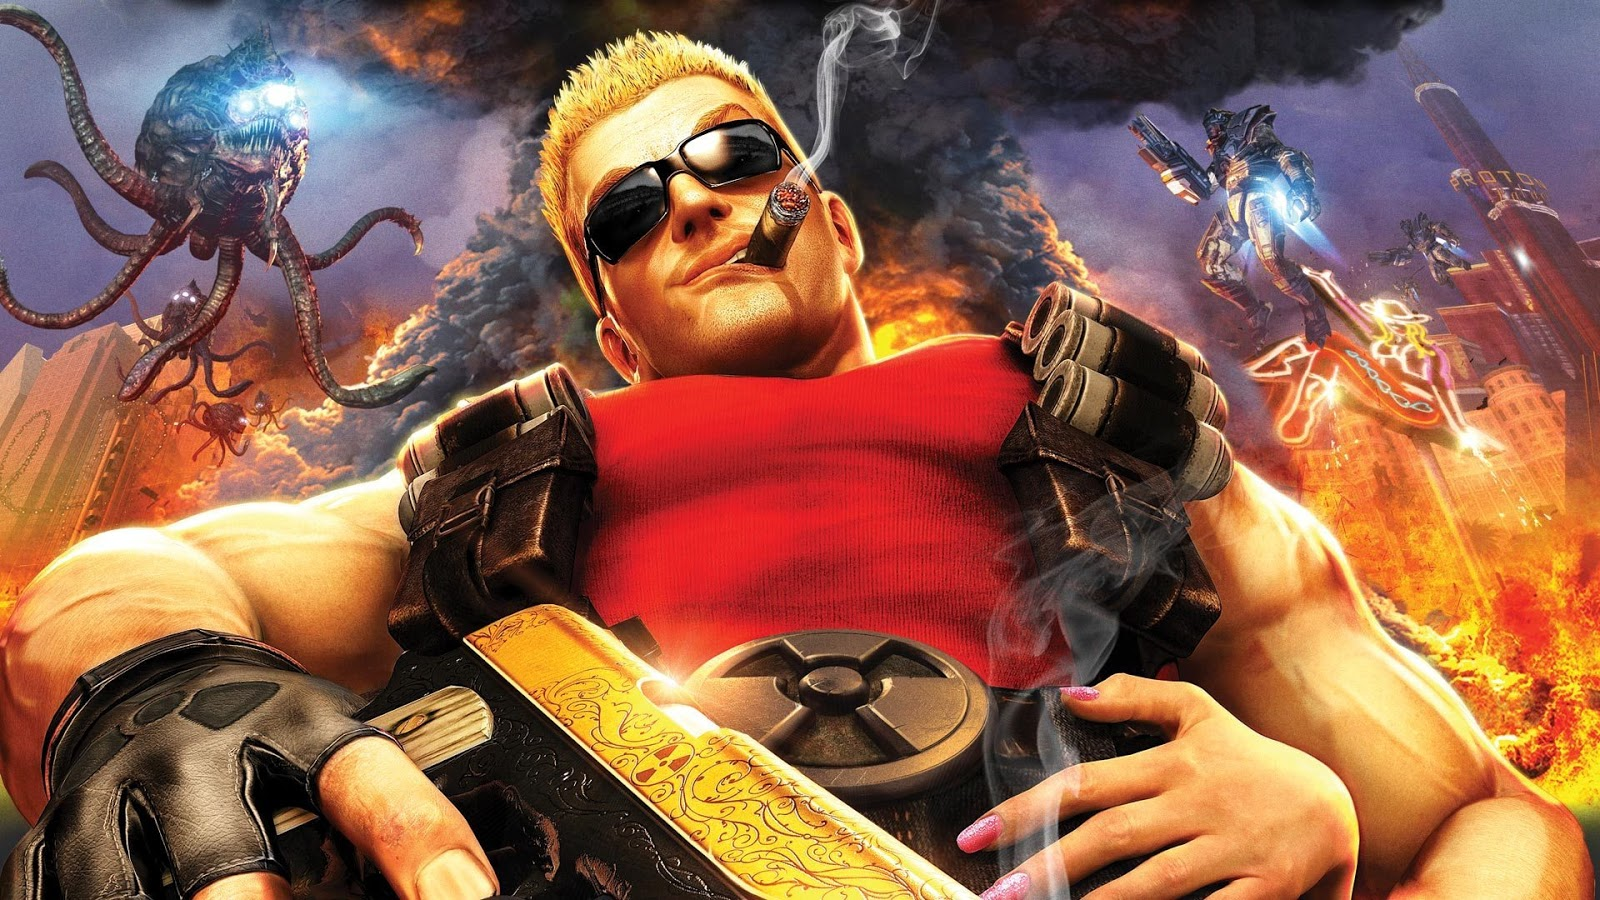 You are supposed to be here! 22 года релизу легендарной игры Duke Nukem 3D - 1